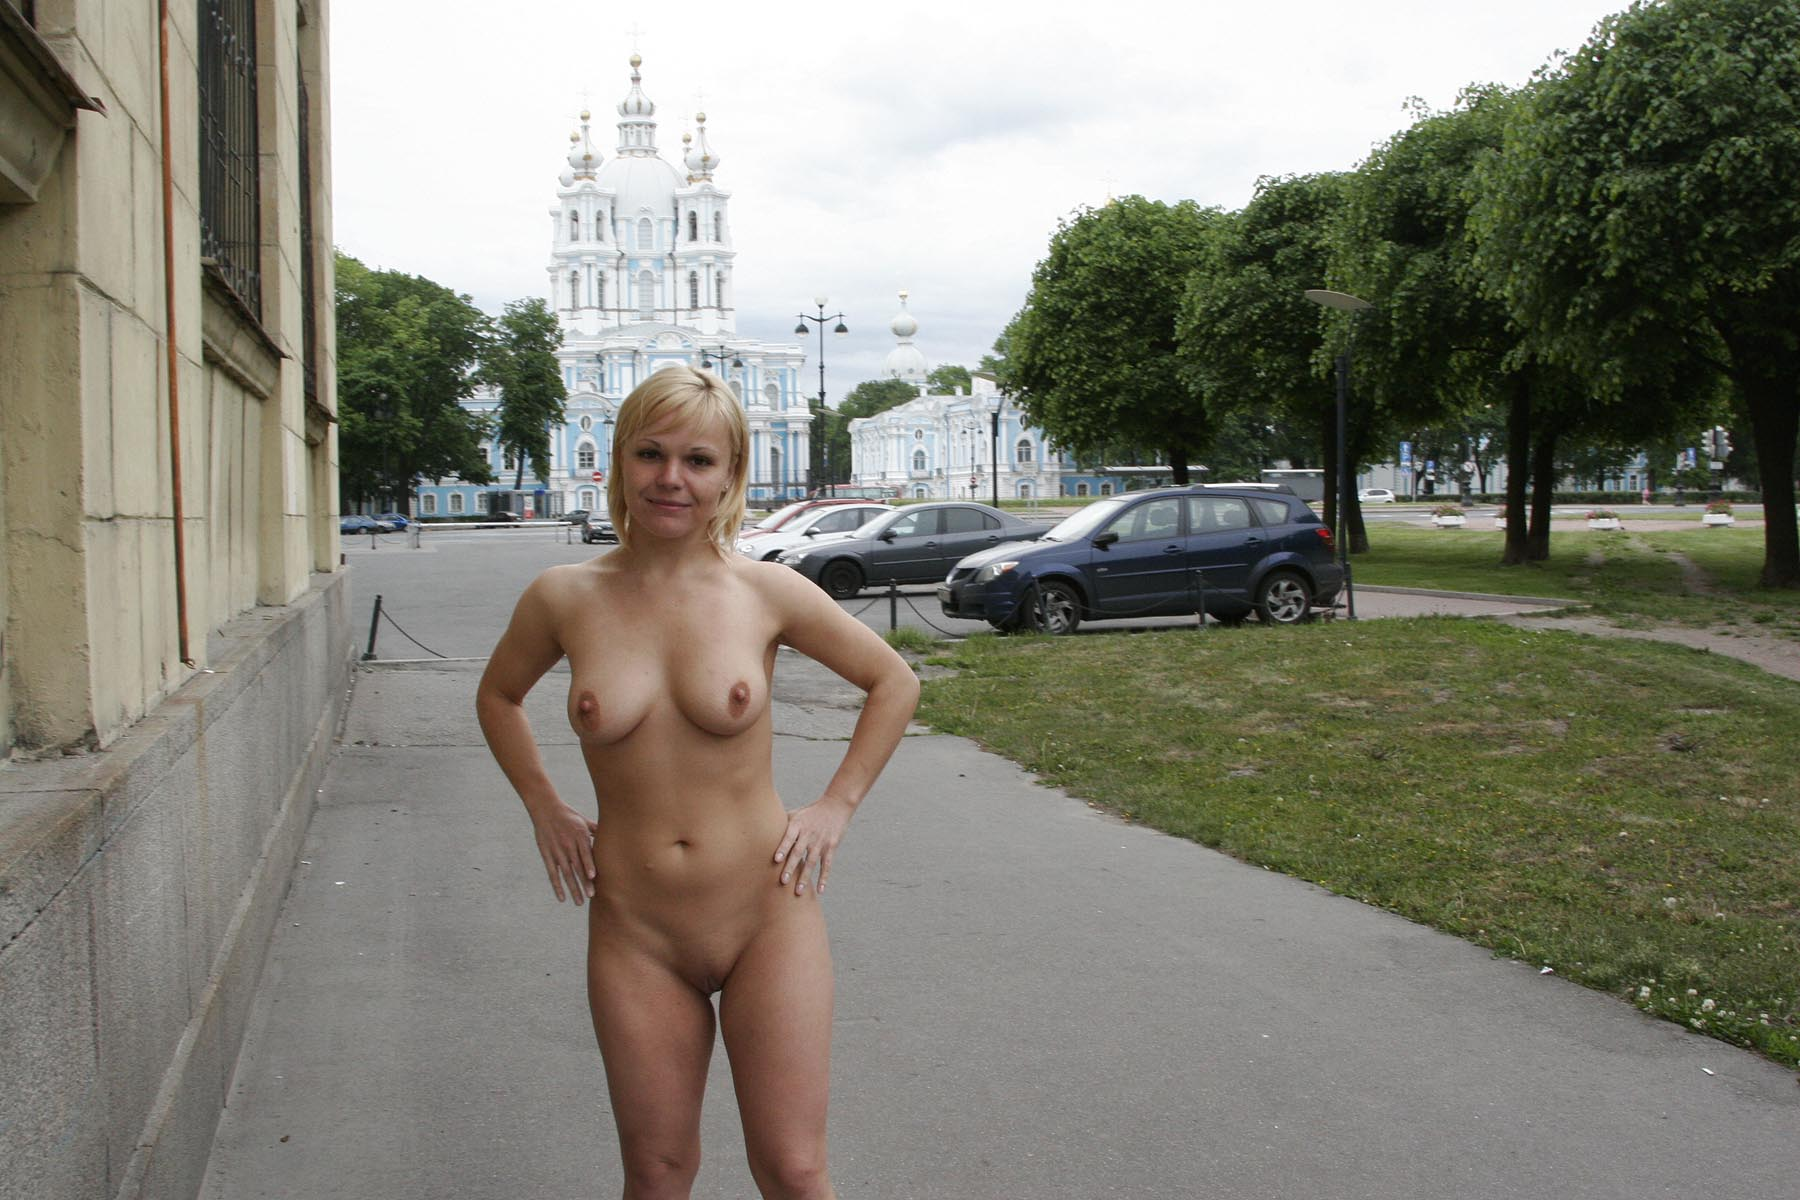 Nude girl short hot haired seems